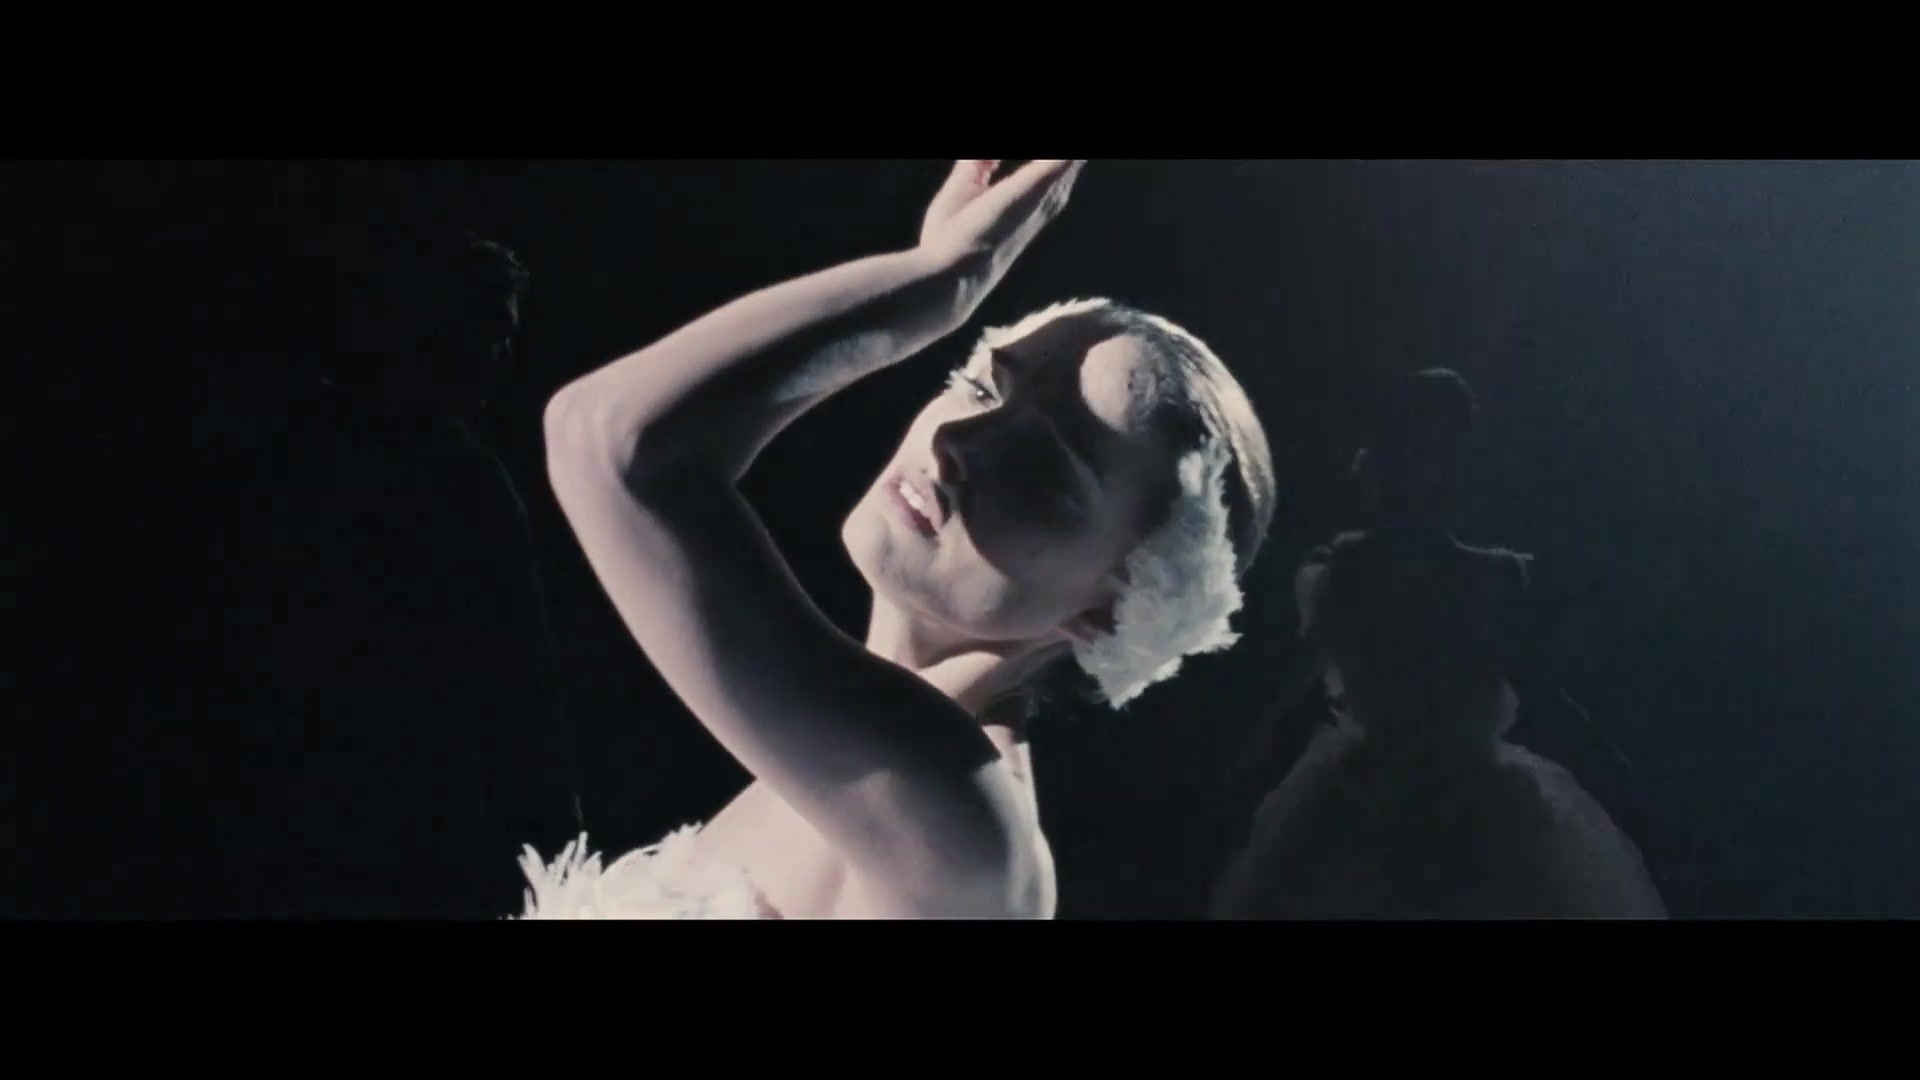 psychoanalytic critique on the black swan I will be analysing some of many key themes of psychoanalysis and how they are portrayed in the film black swan and convey which scenes each theme are represented in.